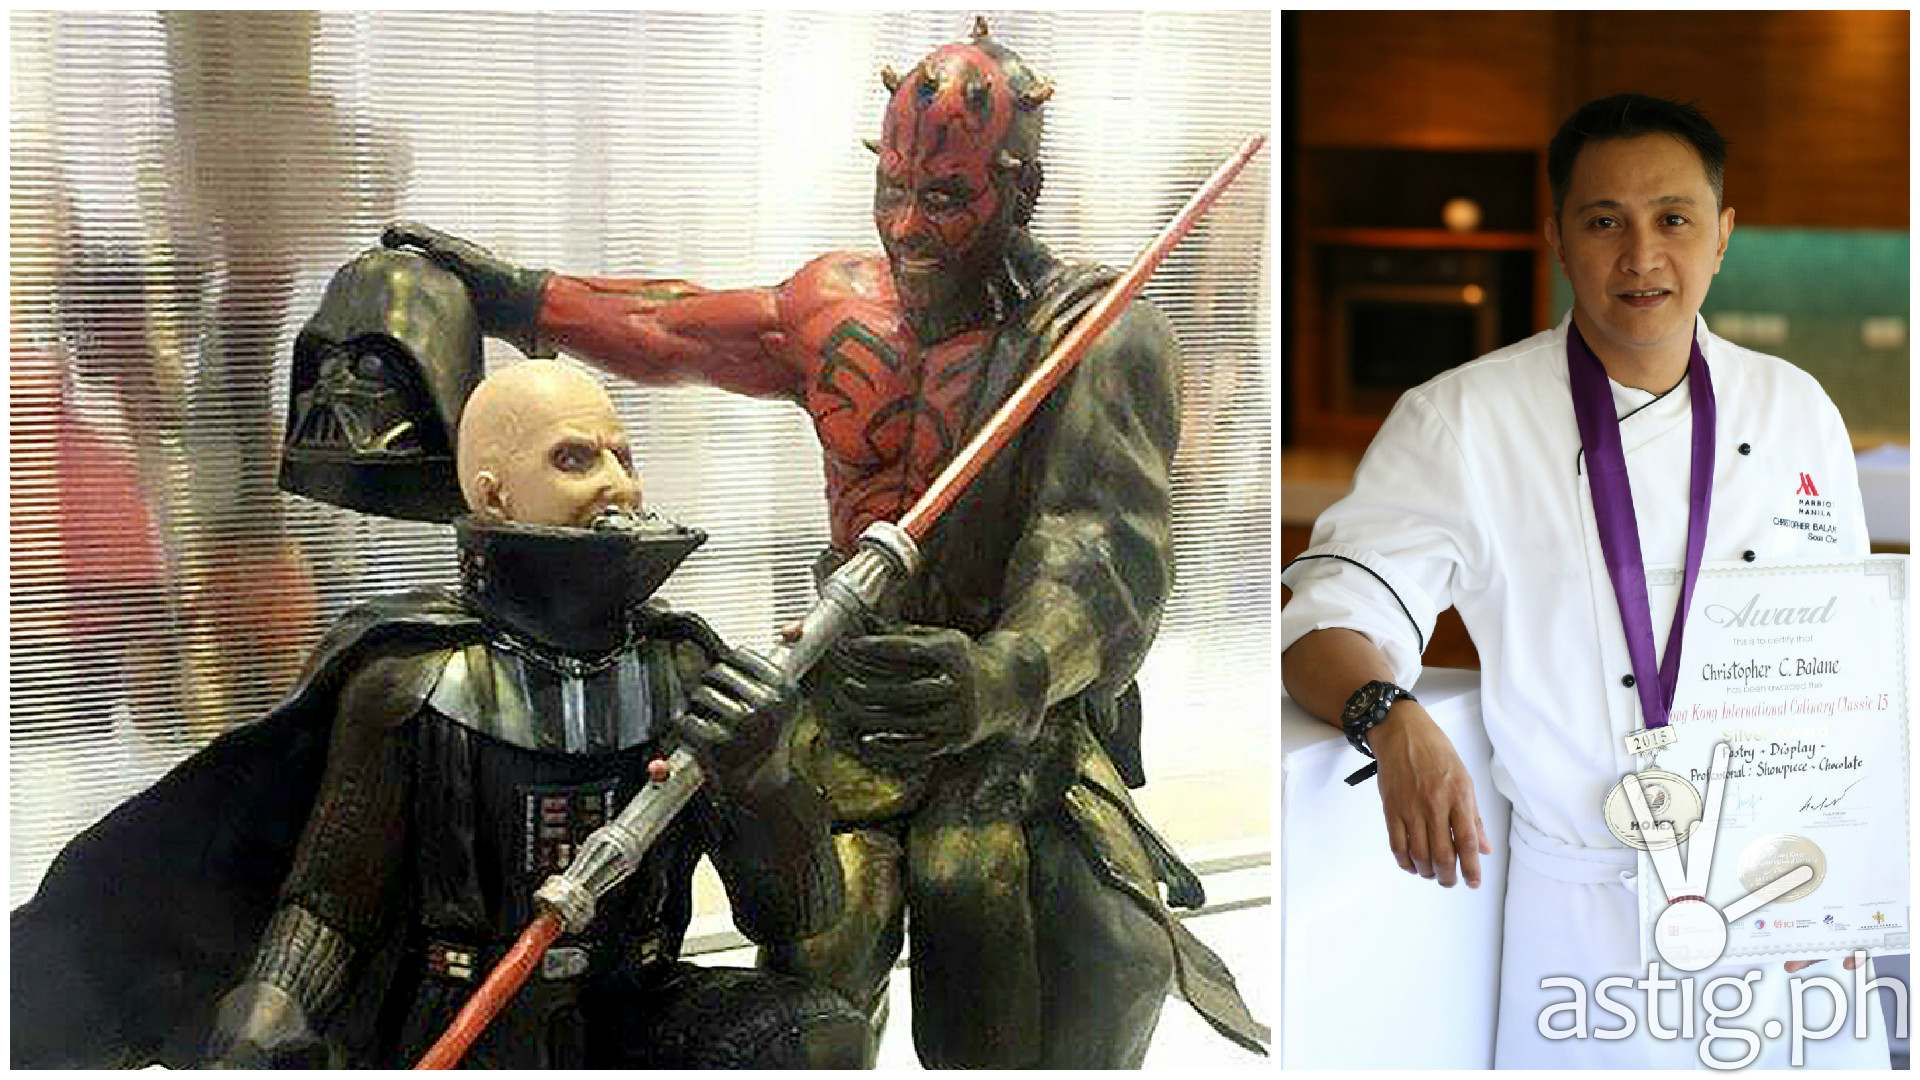 Star Wars chocolate by Chef Christopher Balane